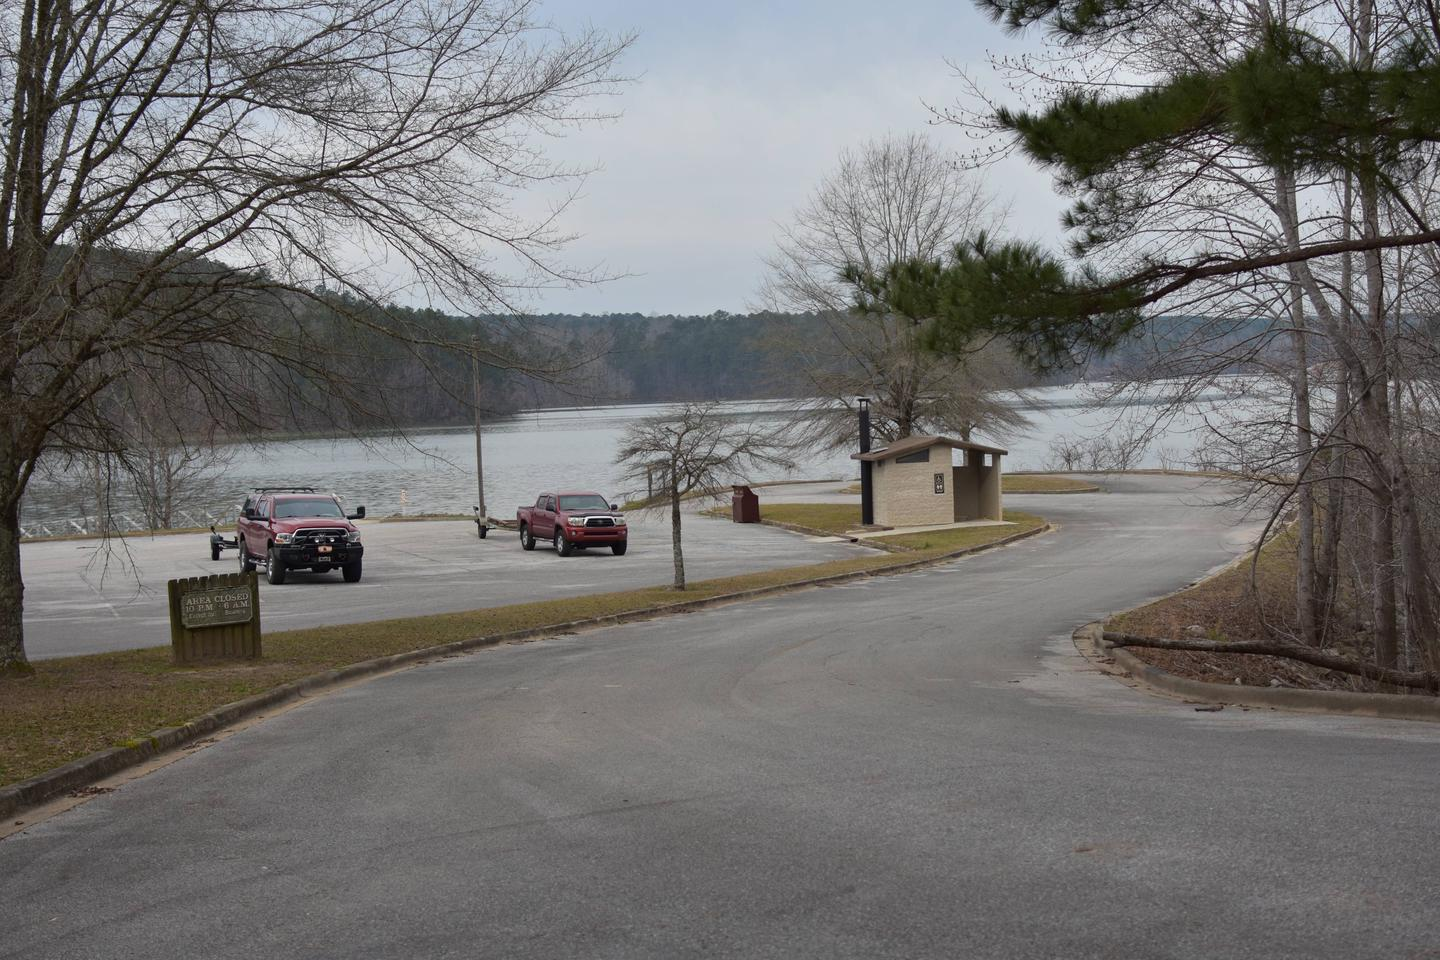 Arriving at the Clear Creek Public Boat RampArriving at the Clear Creek Public Boat Ramp March 1st, 2020